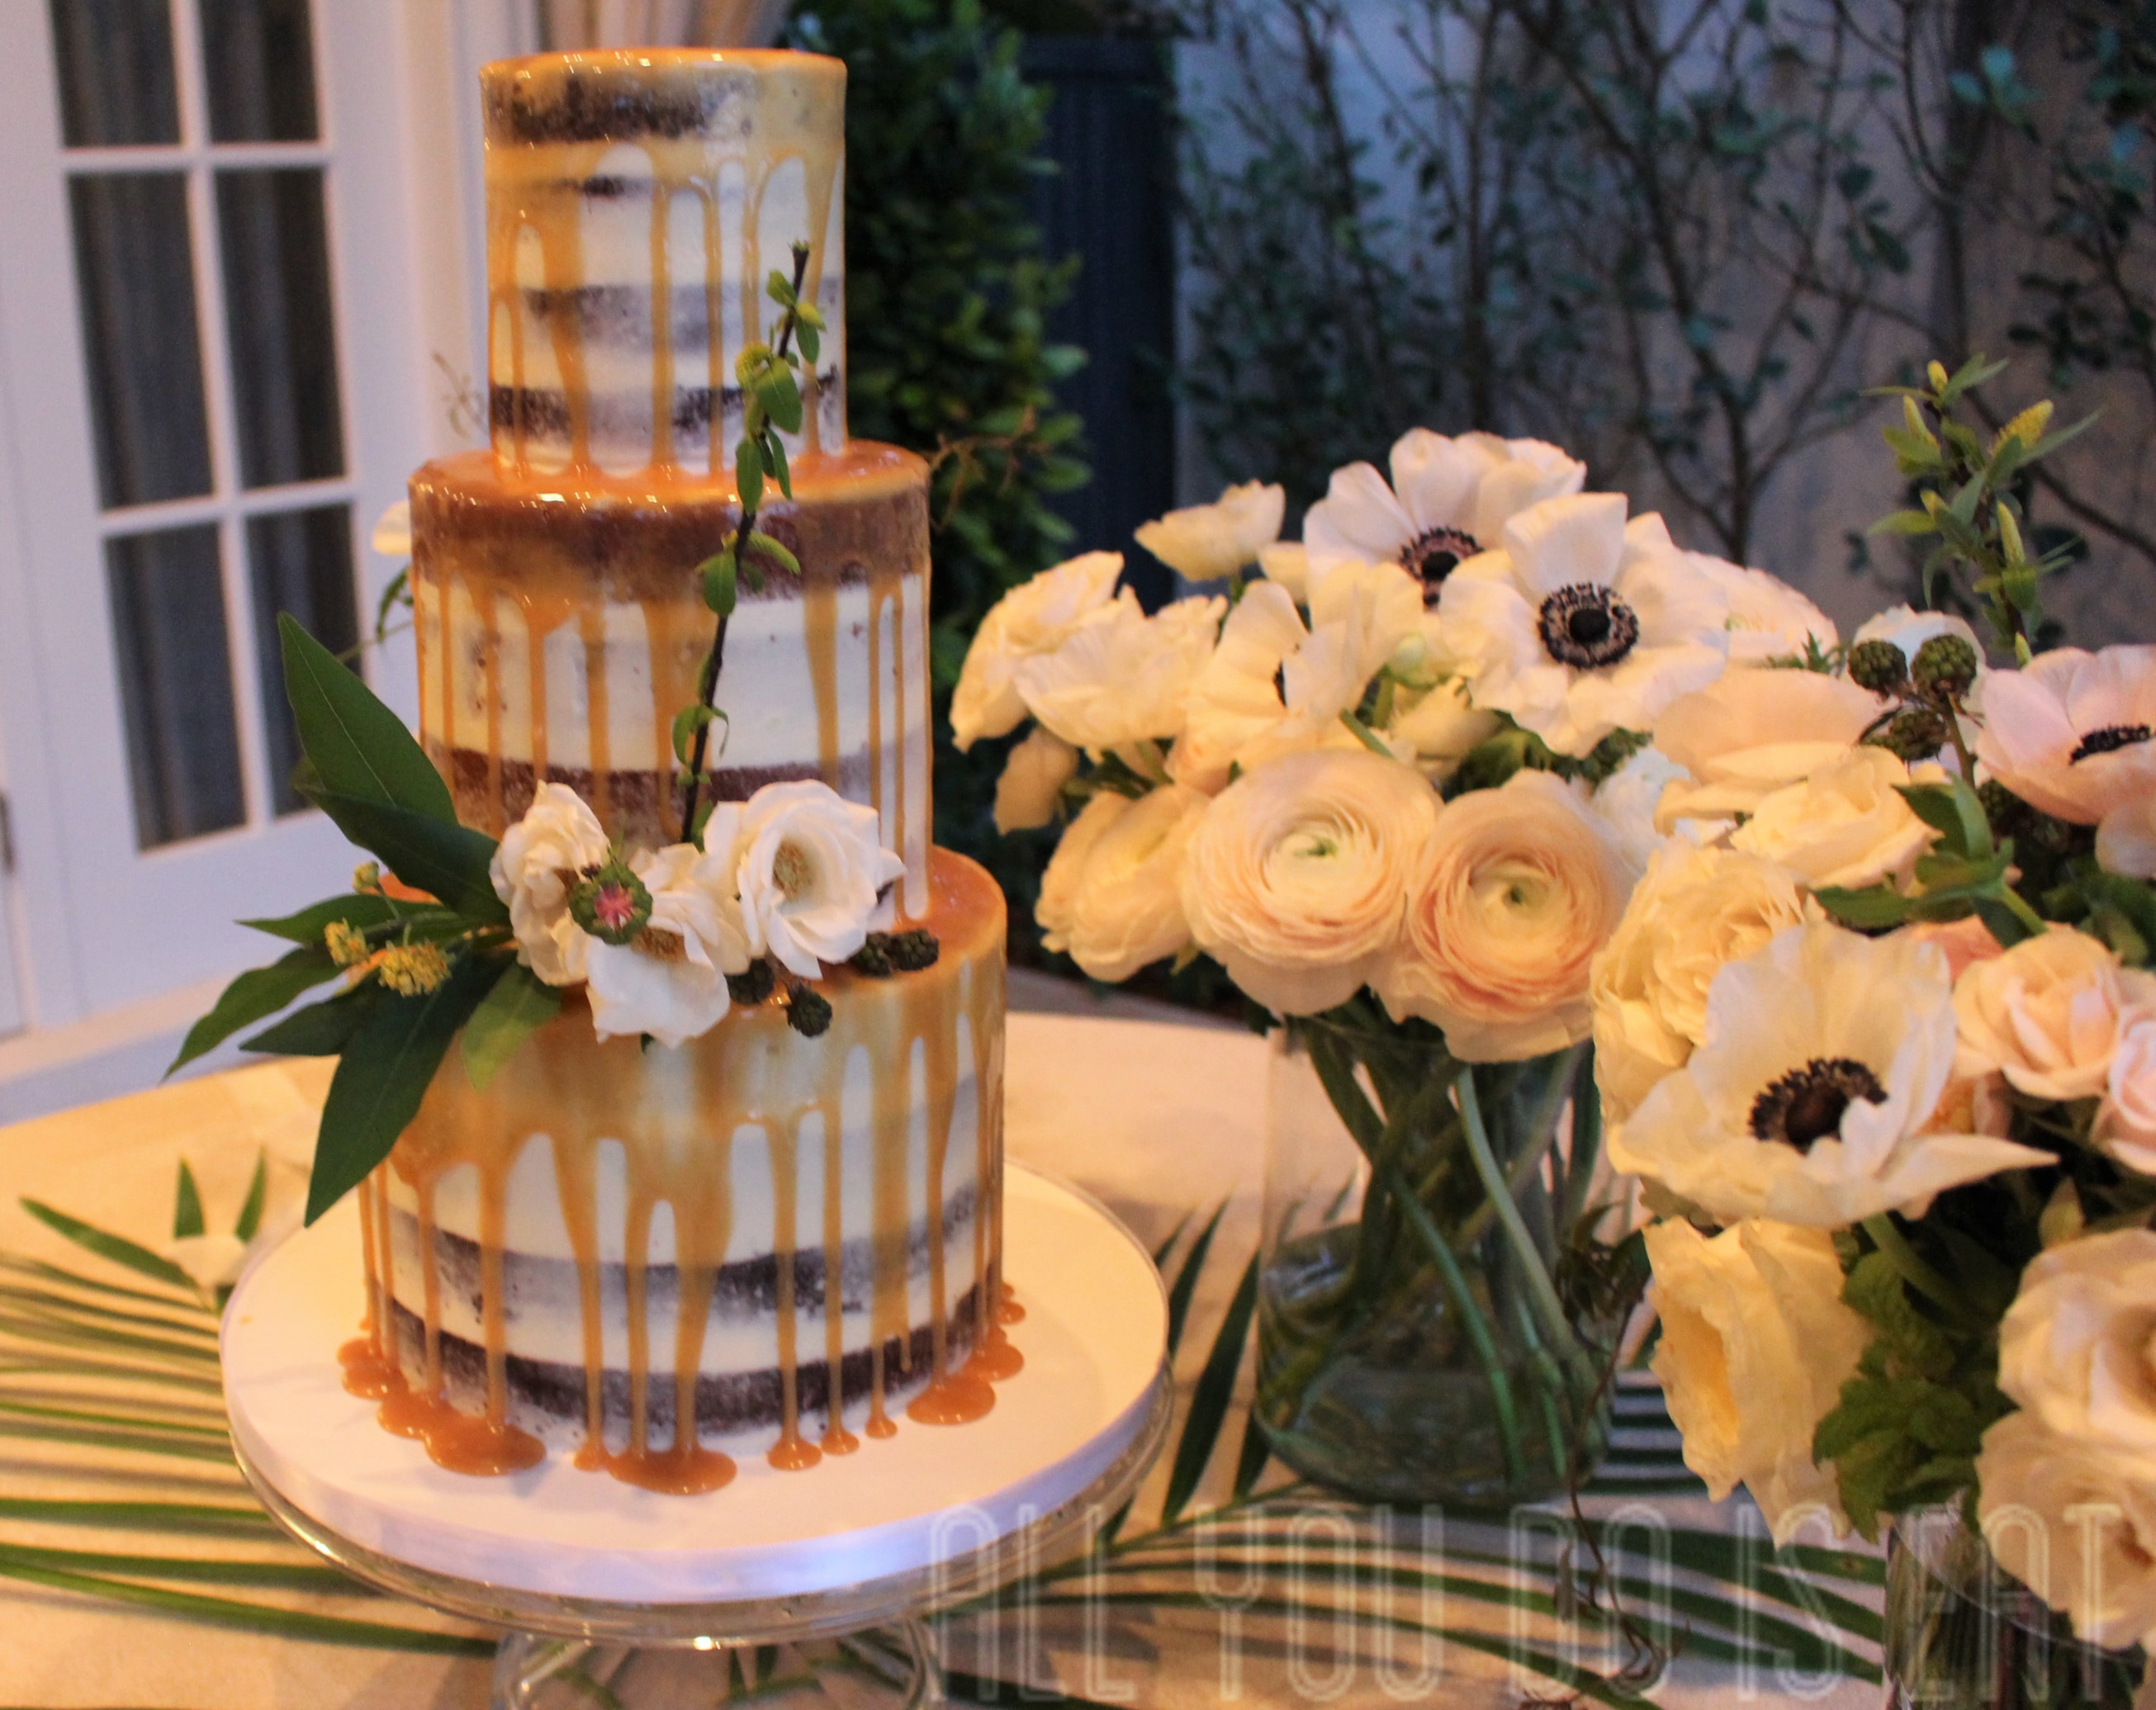 A Very Foodie Wedding: Part I